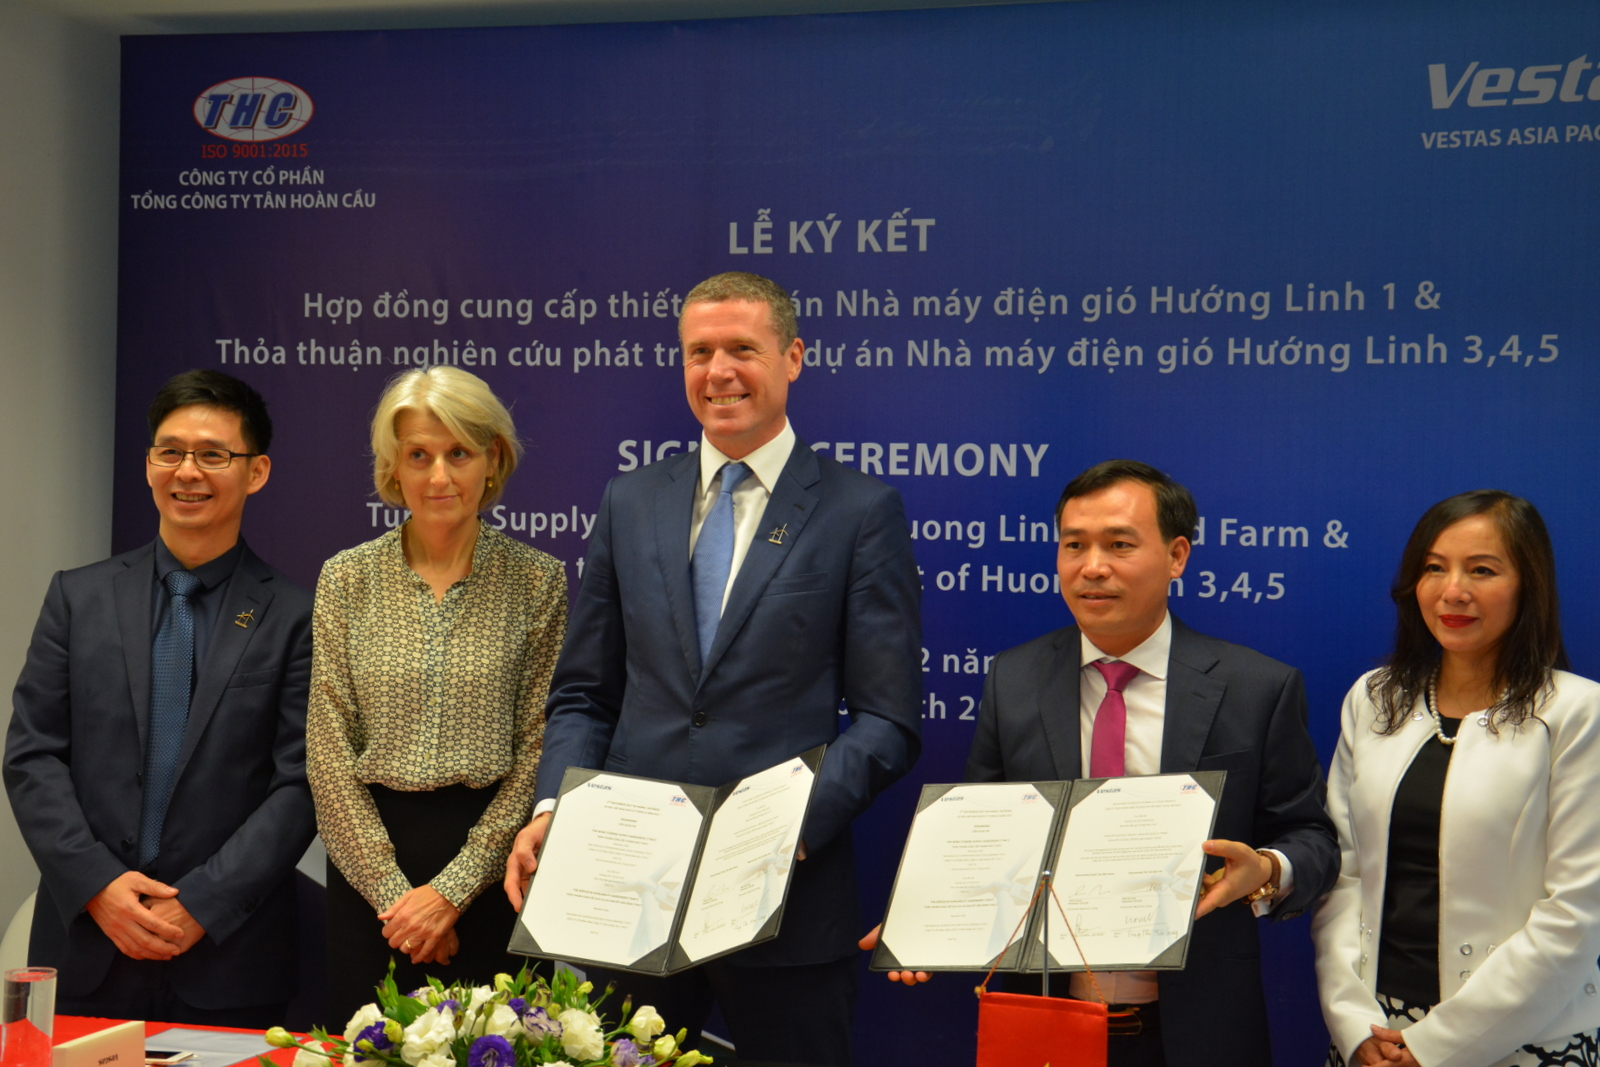 Vestas and Tan Hoang Cau sign MoU aims to accelerate wind farm development